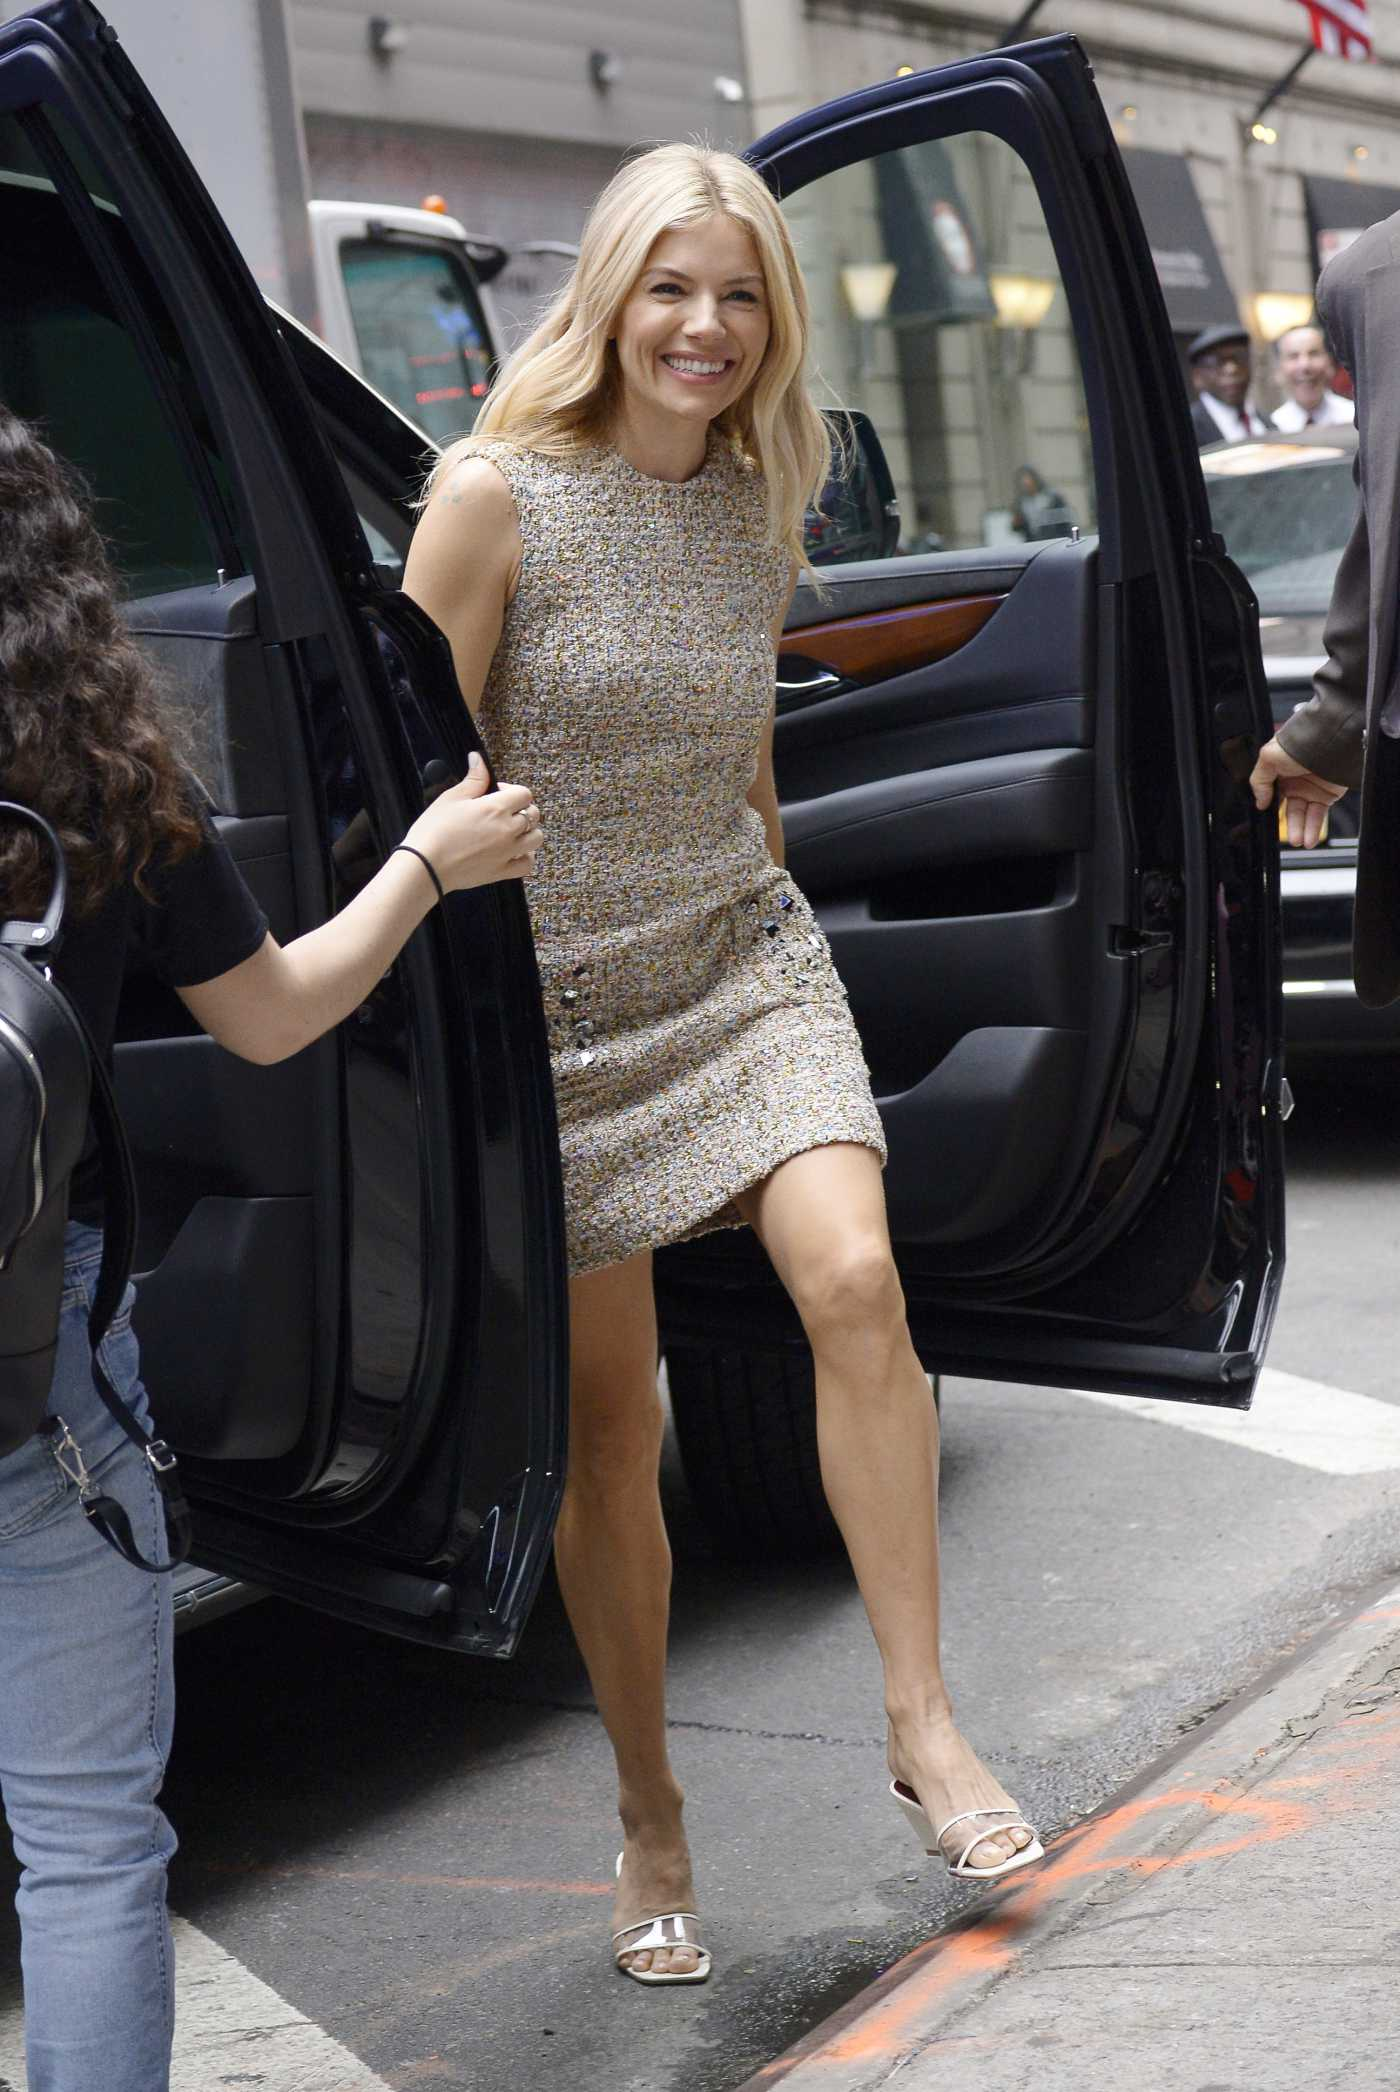 Sienna Miller in a Beige Dress Arrives at the Good Morning America Studios in New York 06/05/2019